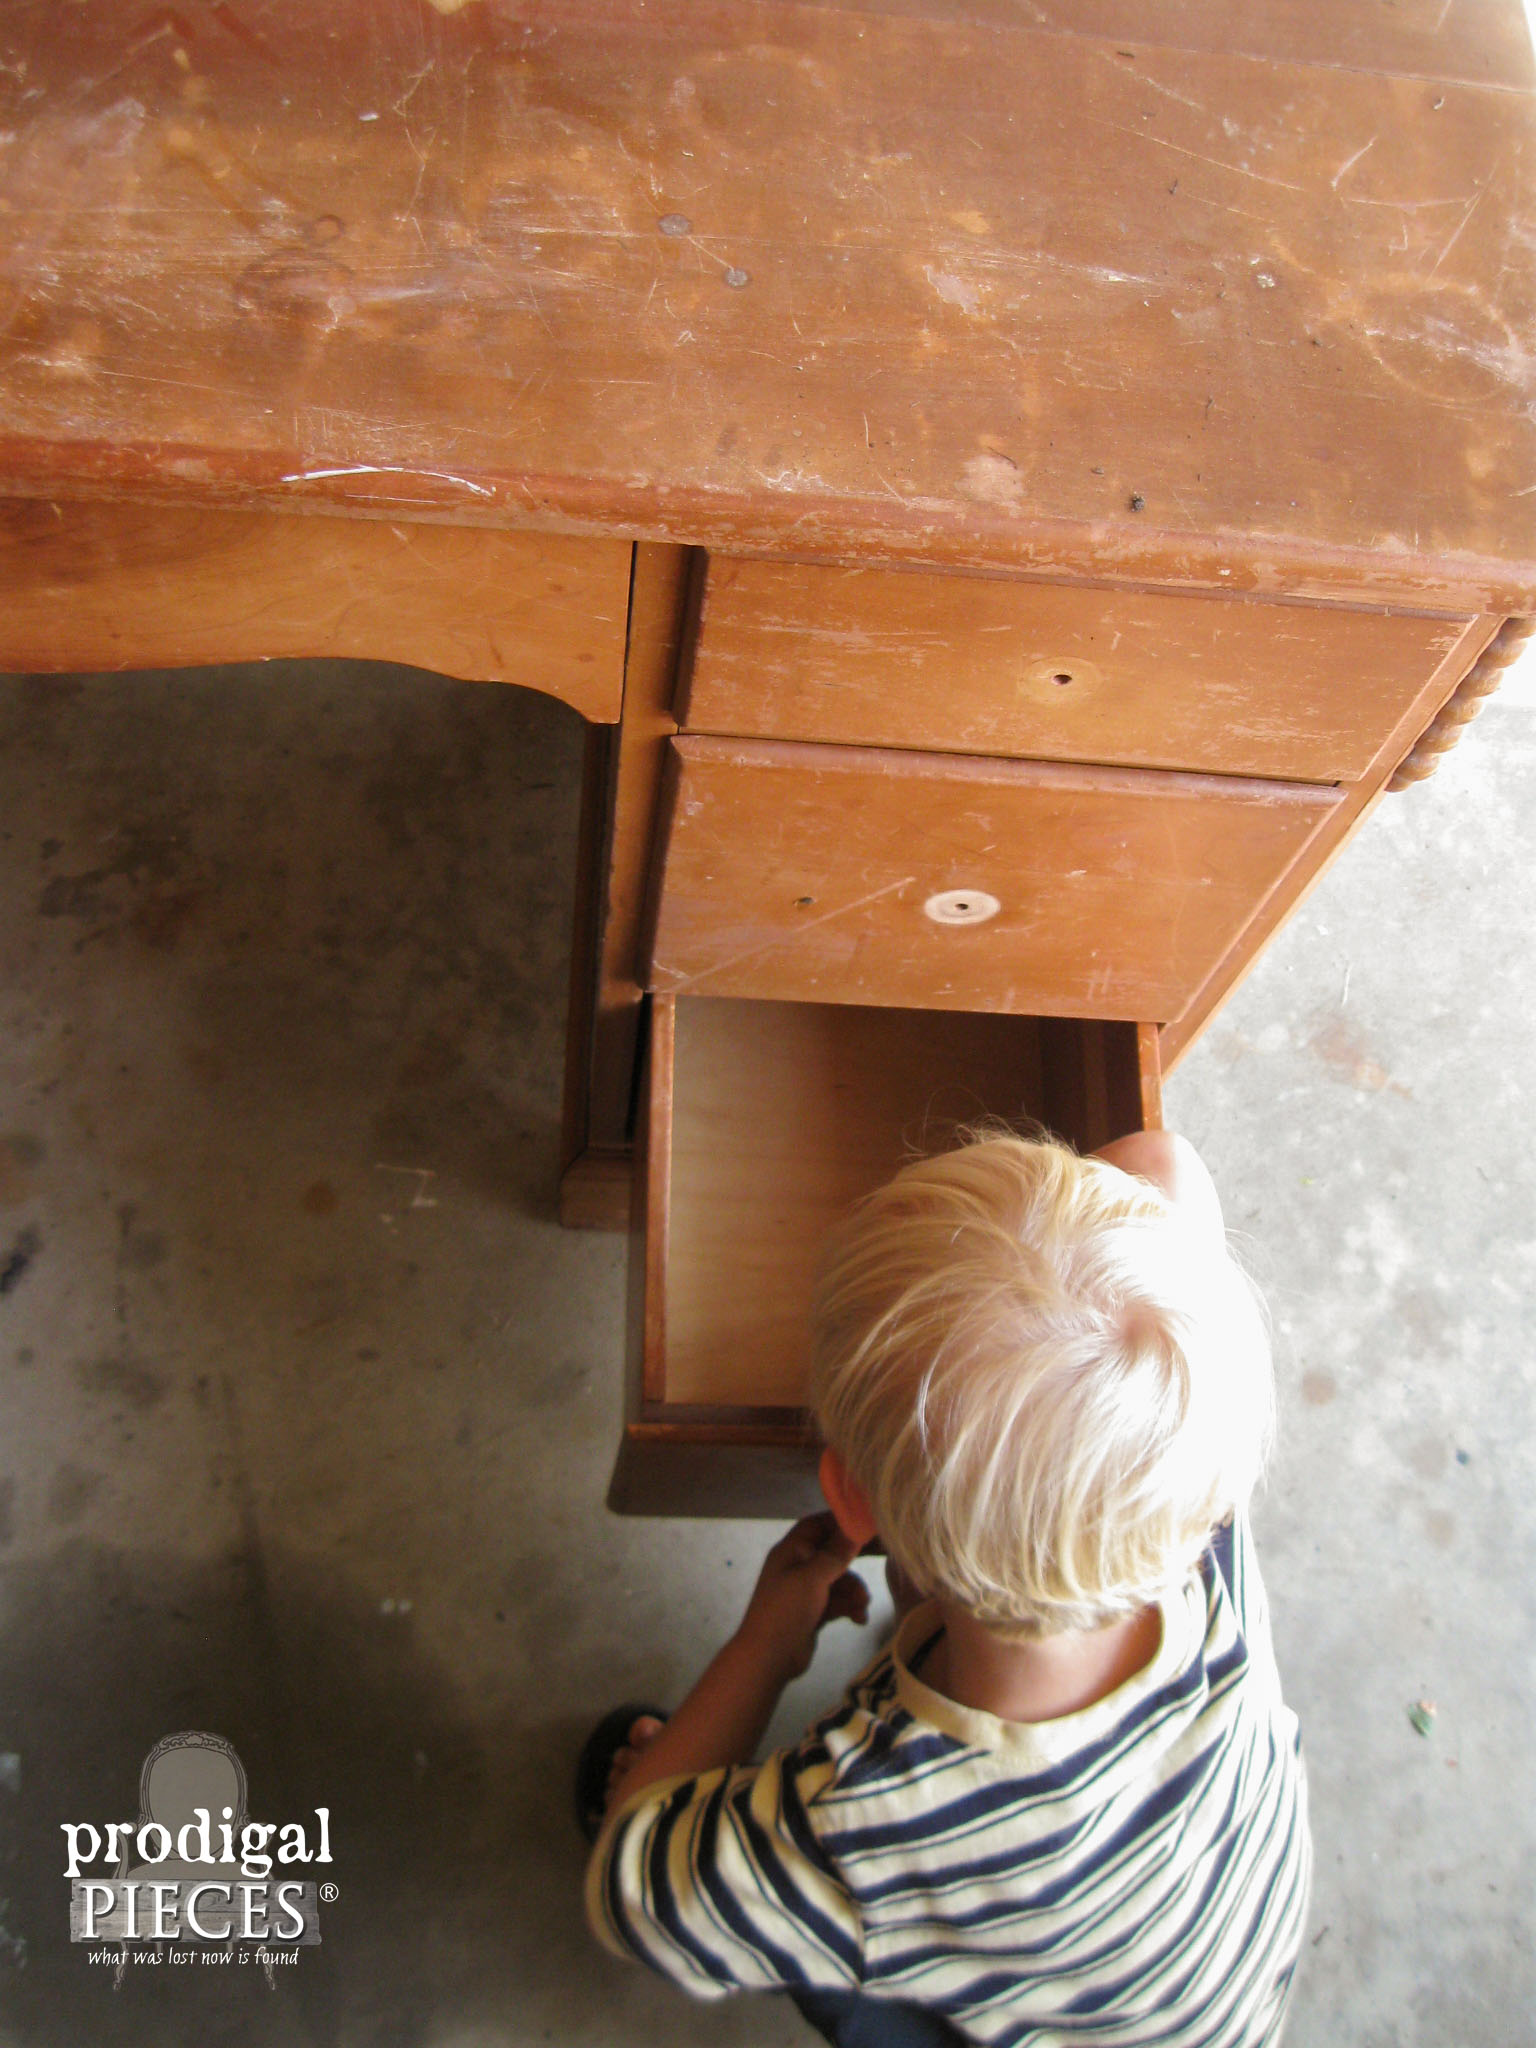 My Son Helping Remove Drawer Pulls | Prodigal Pieces | www.prodigalpieces.com